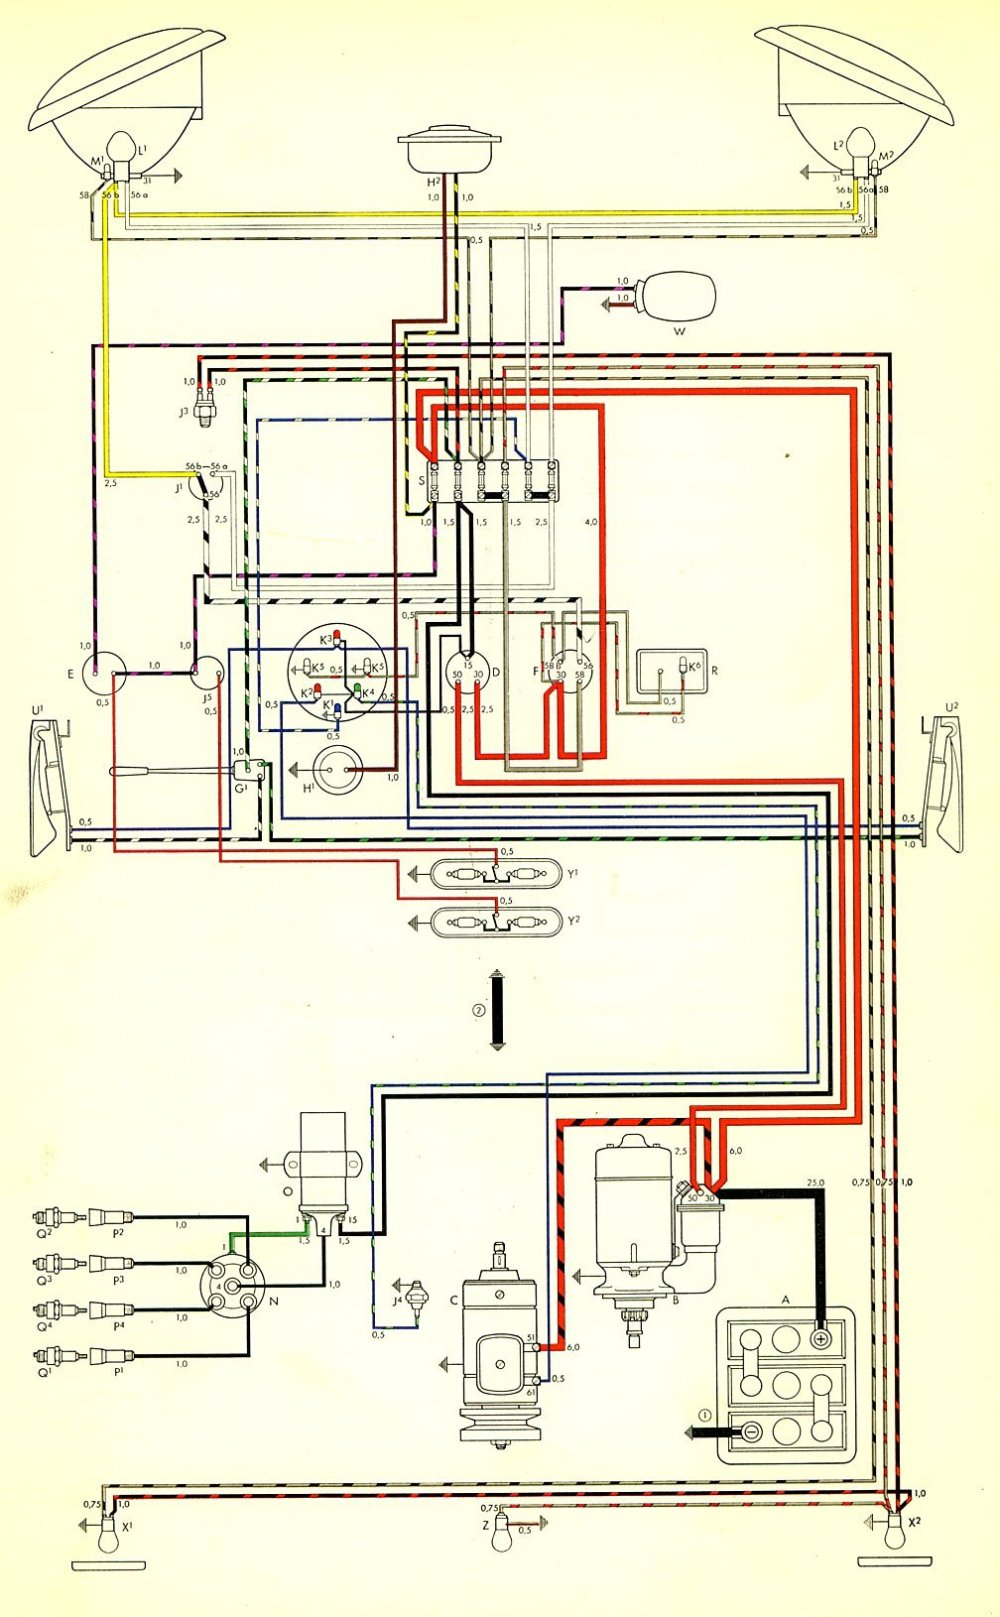 medium resolution of thesamba com type 2 wiring diagrams rh thesamba com 1968 volkswagen beetle wiring diagram 67 vw